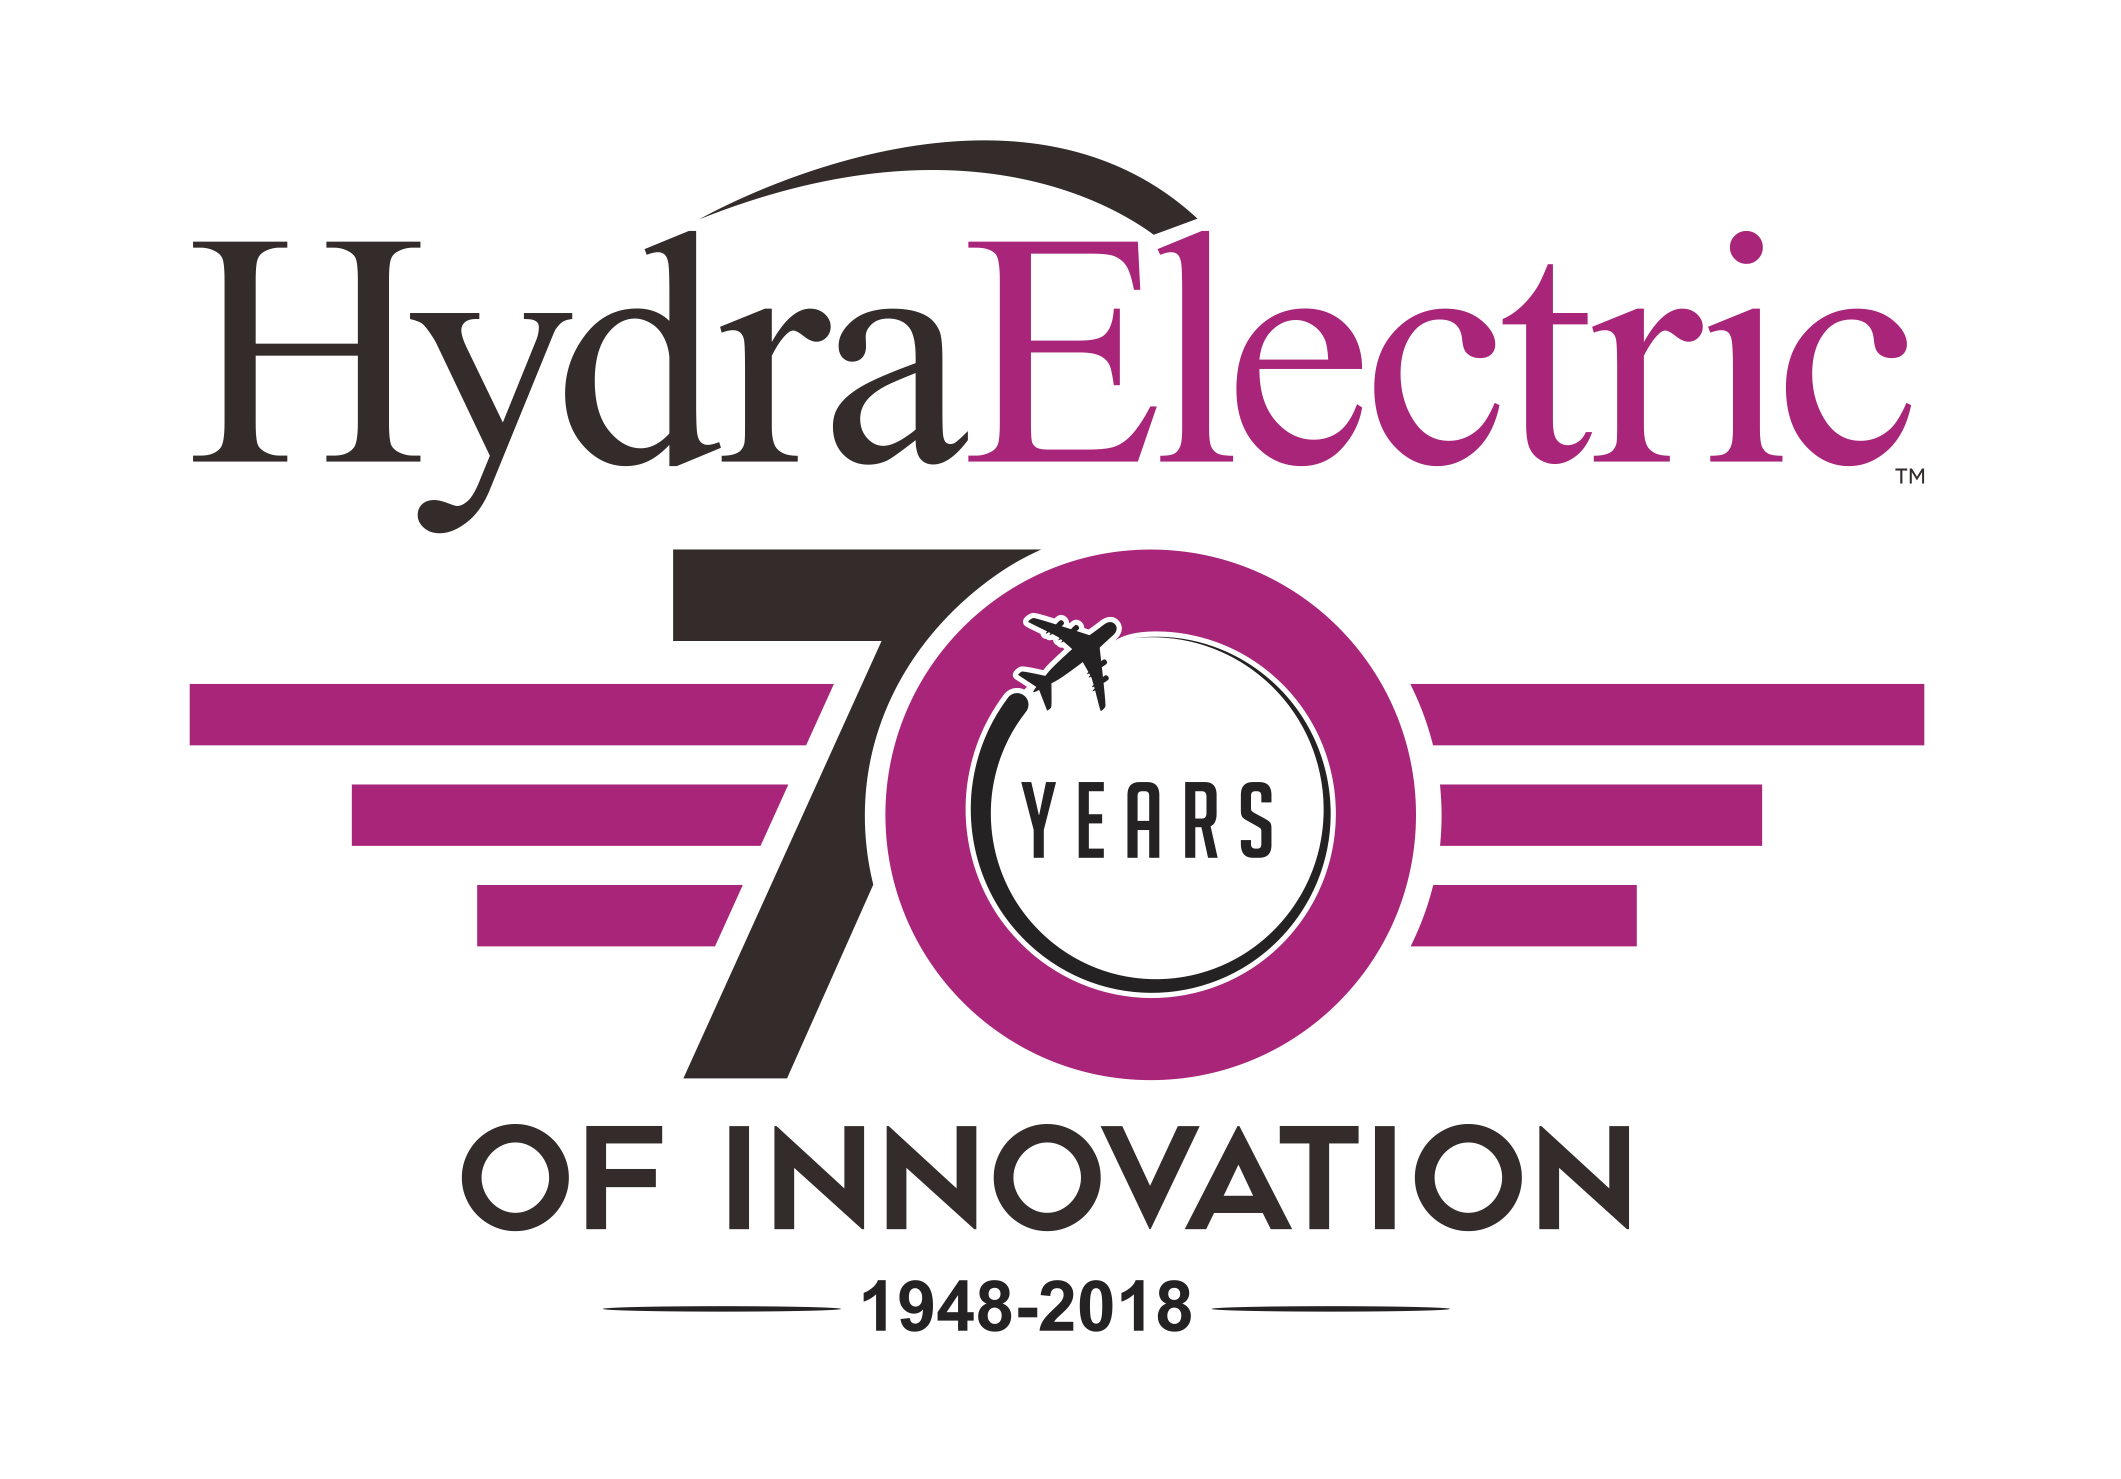 Launching Hydra-Electric's 70th Anniversary at Farnborough International Airshow